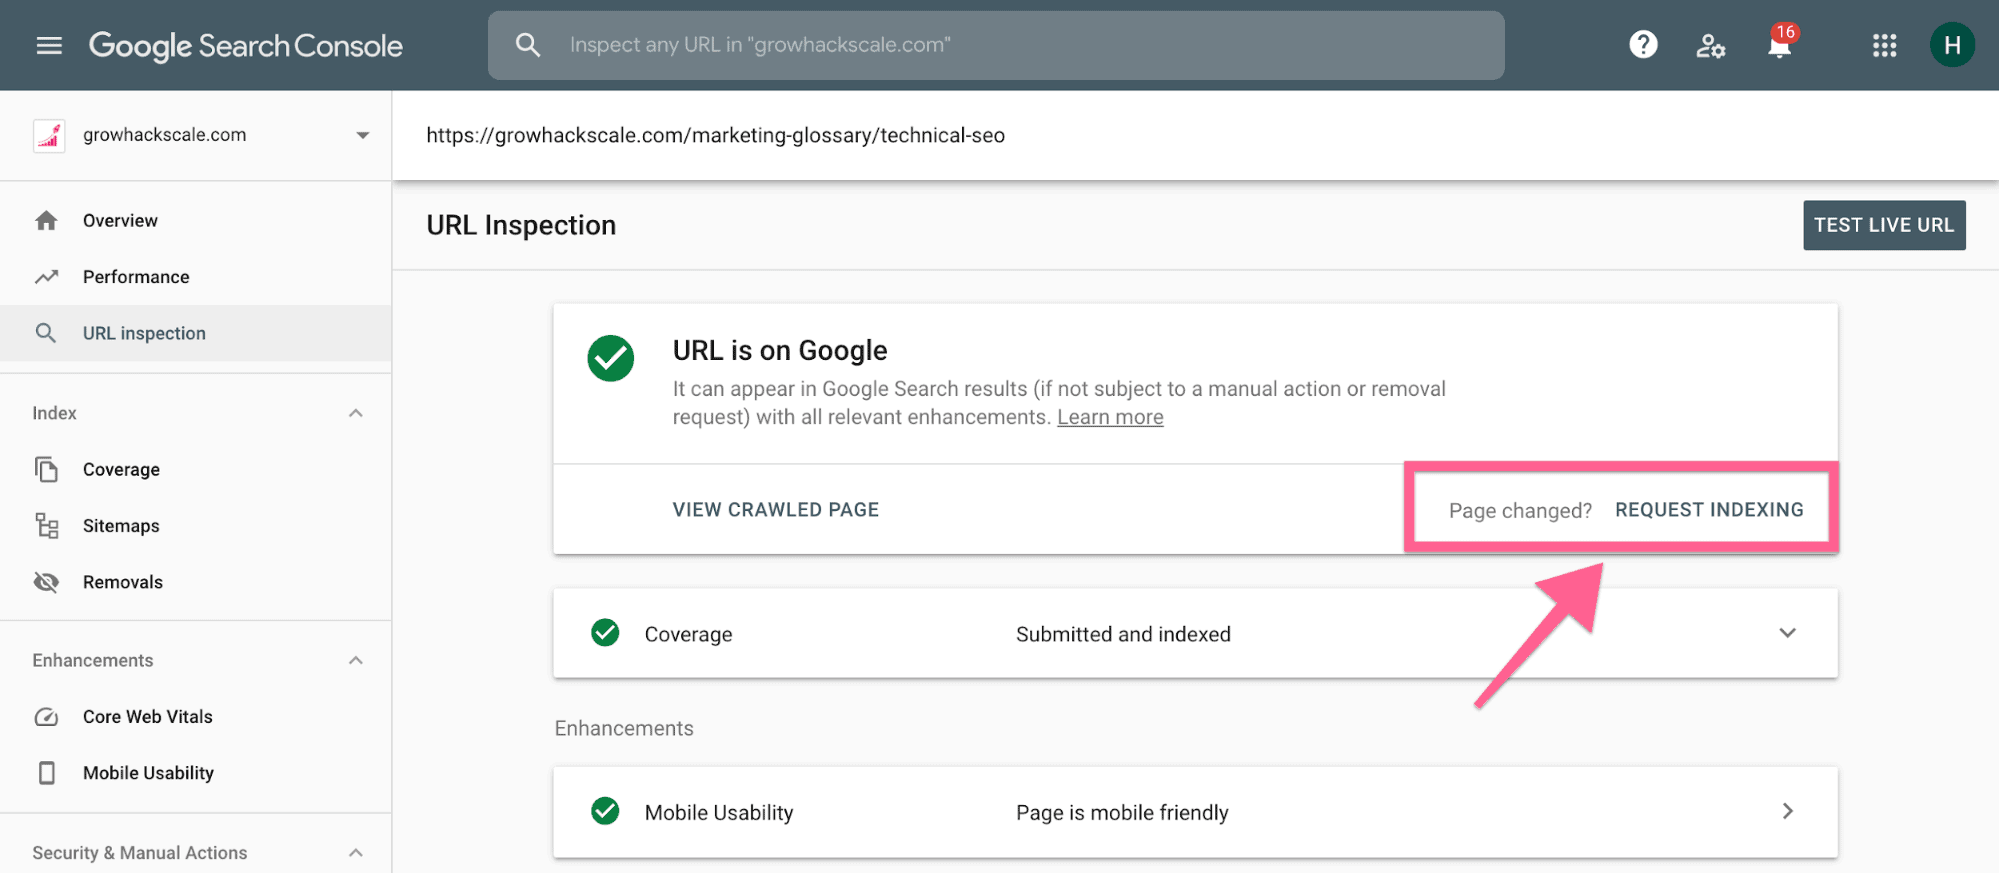 Request indexing on Google search console